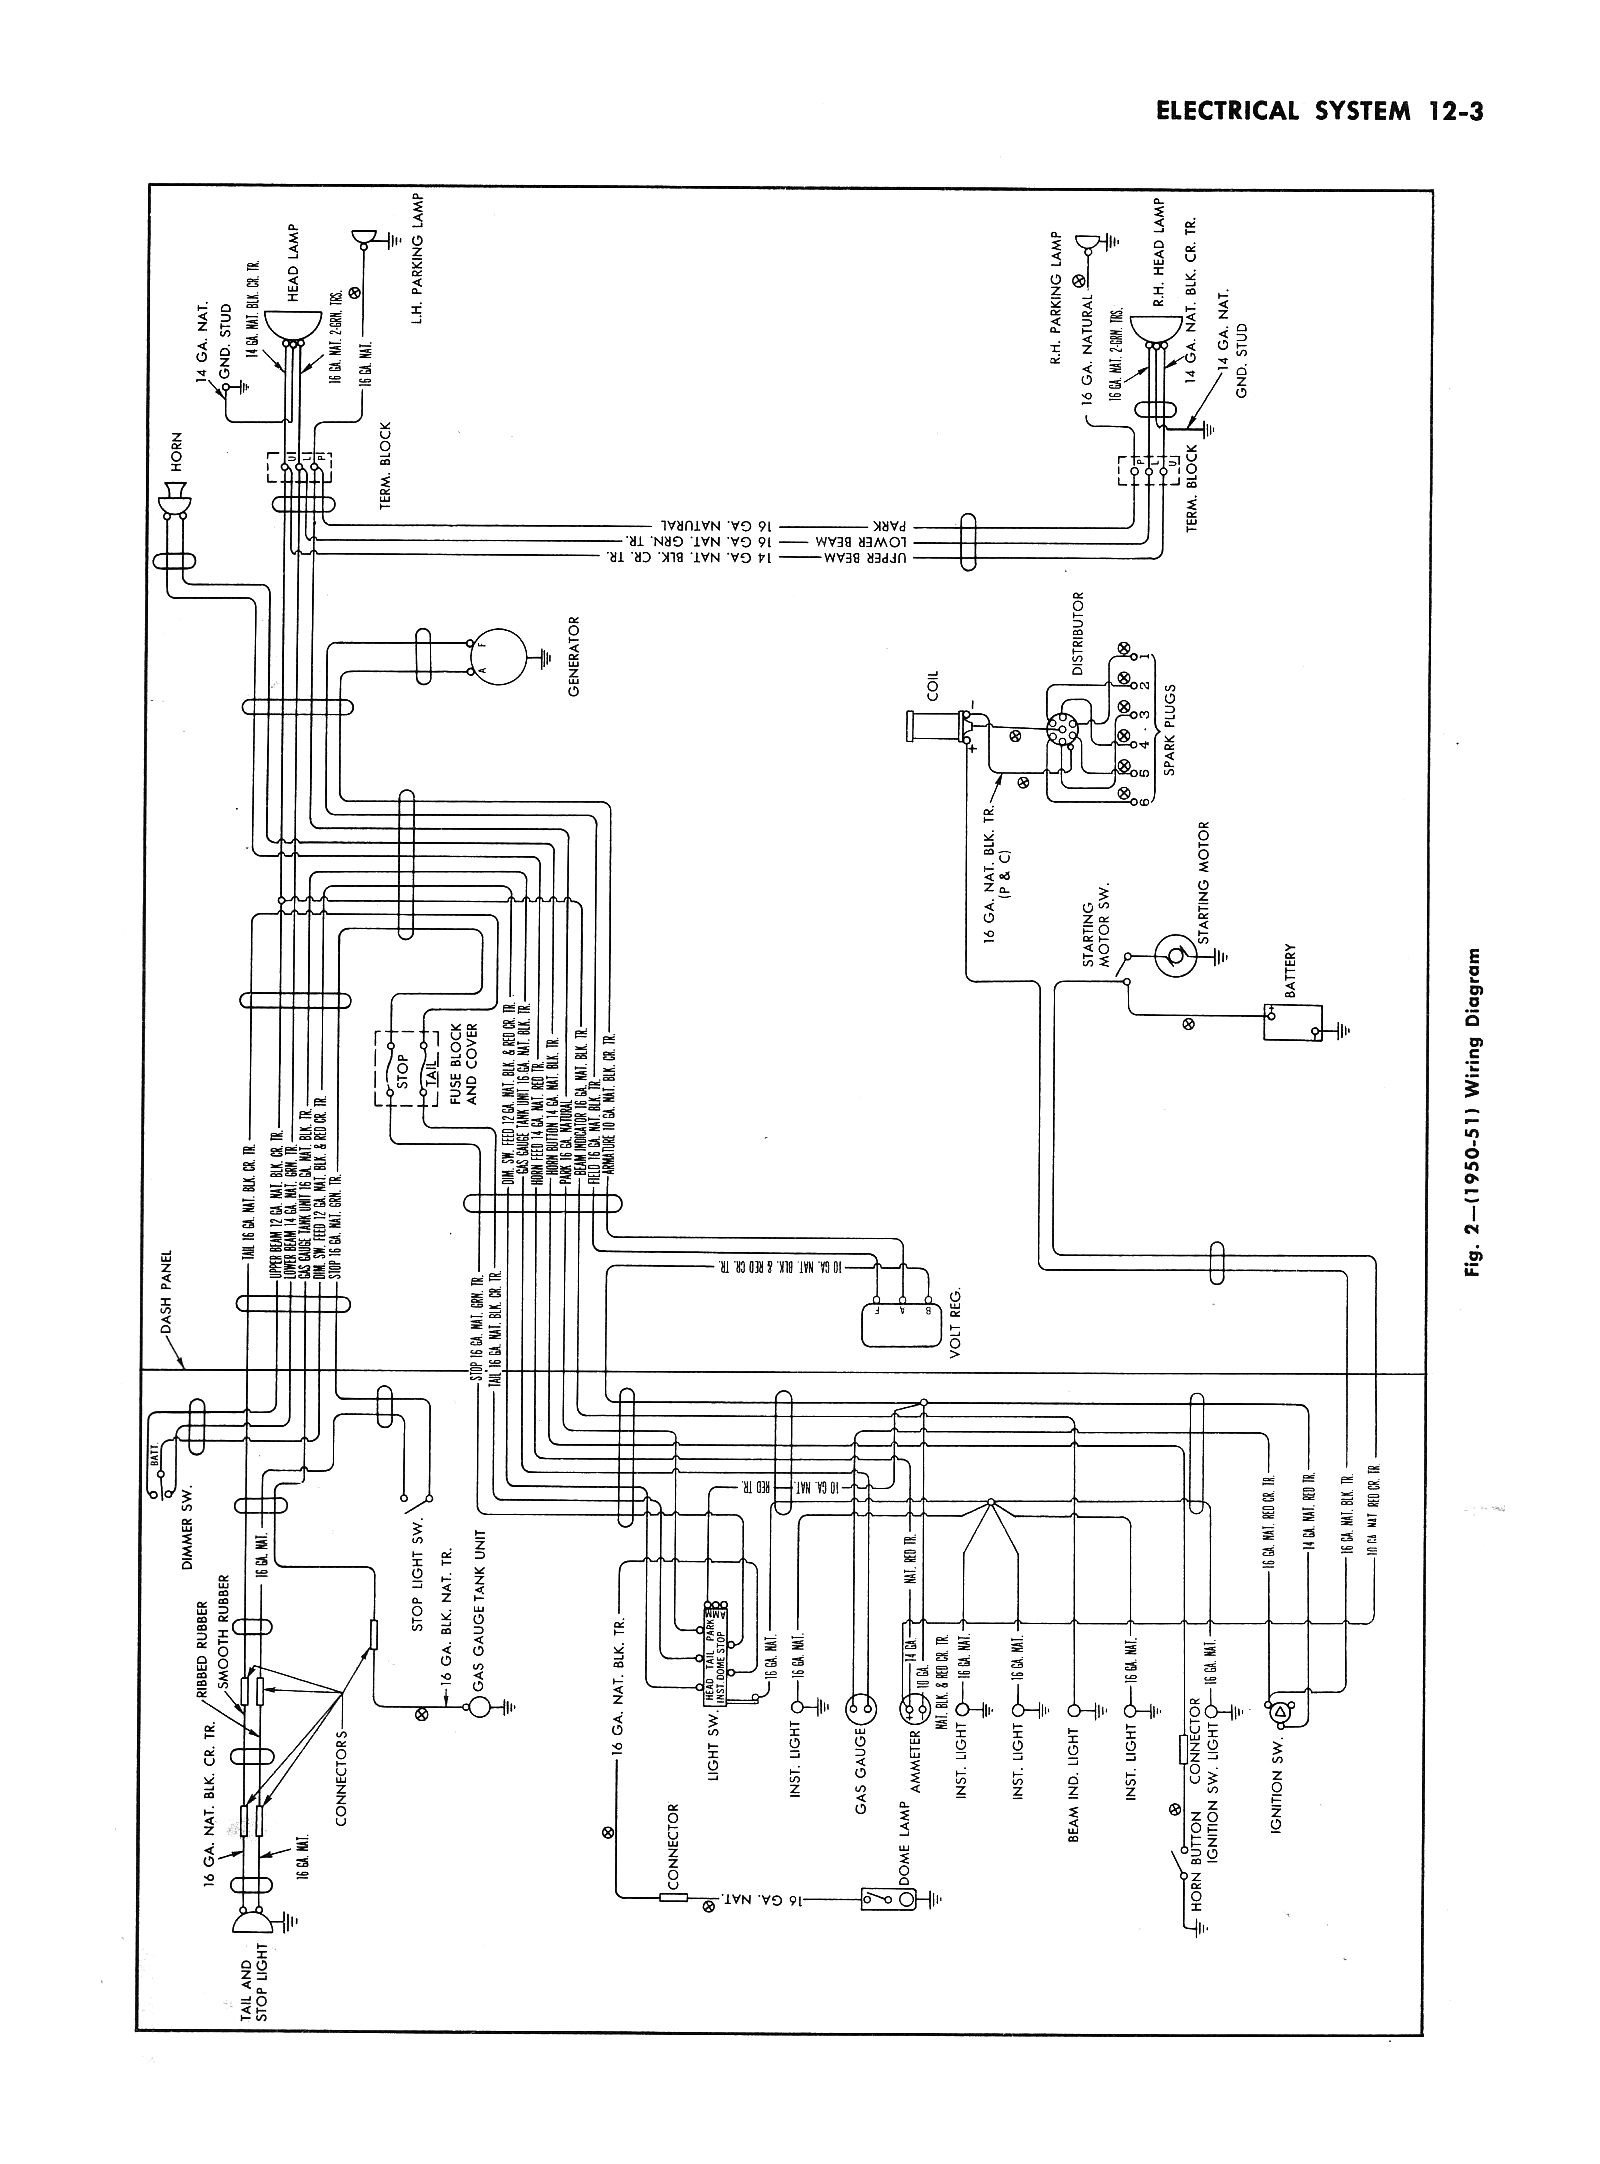 chevy wiring diagrams wiring for chevy truck headlight switch wiring diagram chevy truck